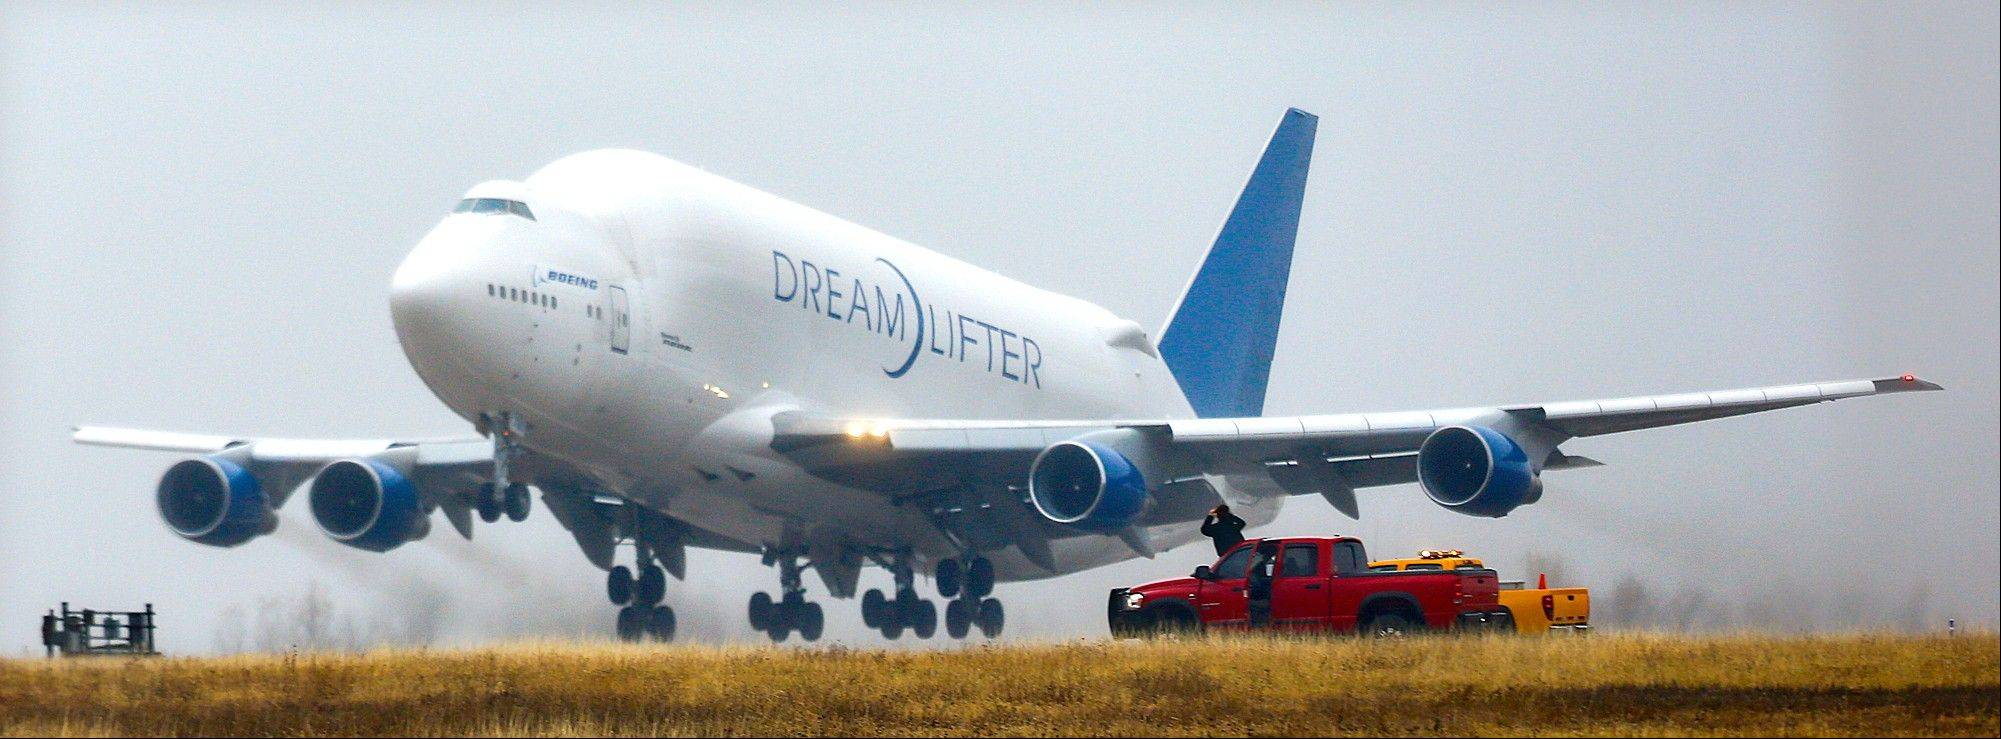 A Boeing 747 �Dreamlifter� takes off Thursday, the day after it mistakenly landed at Col. James Jabara Airport in Wichita, Kan.